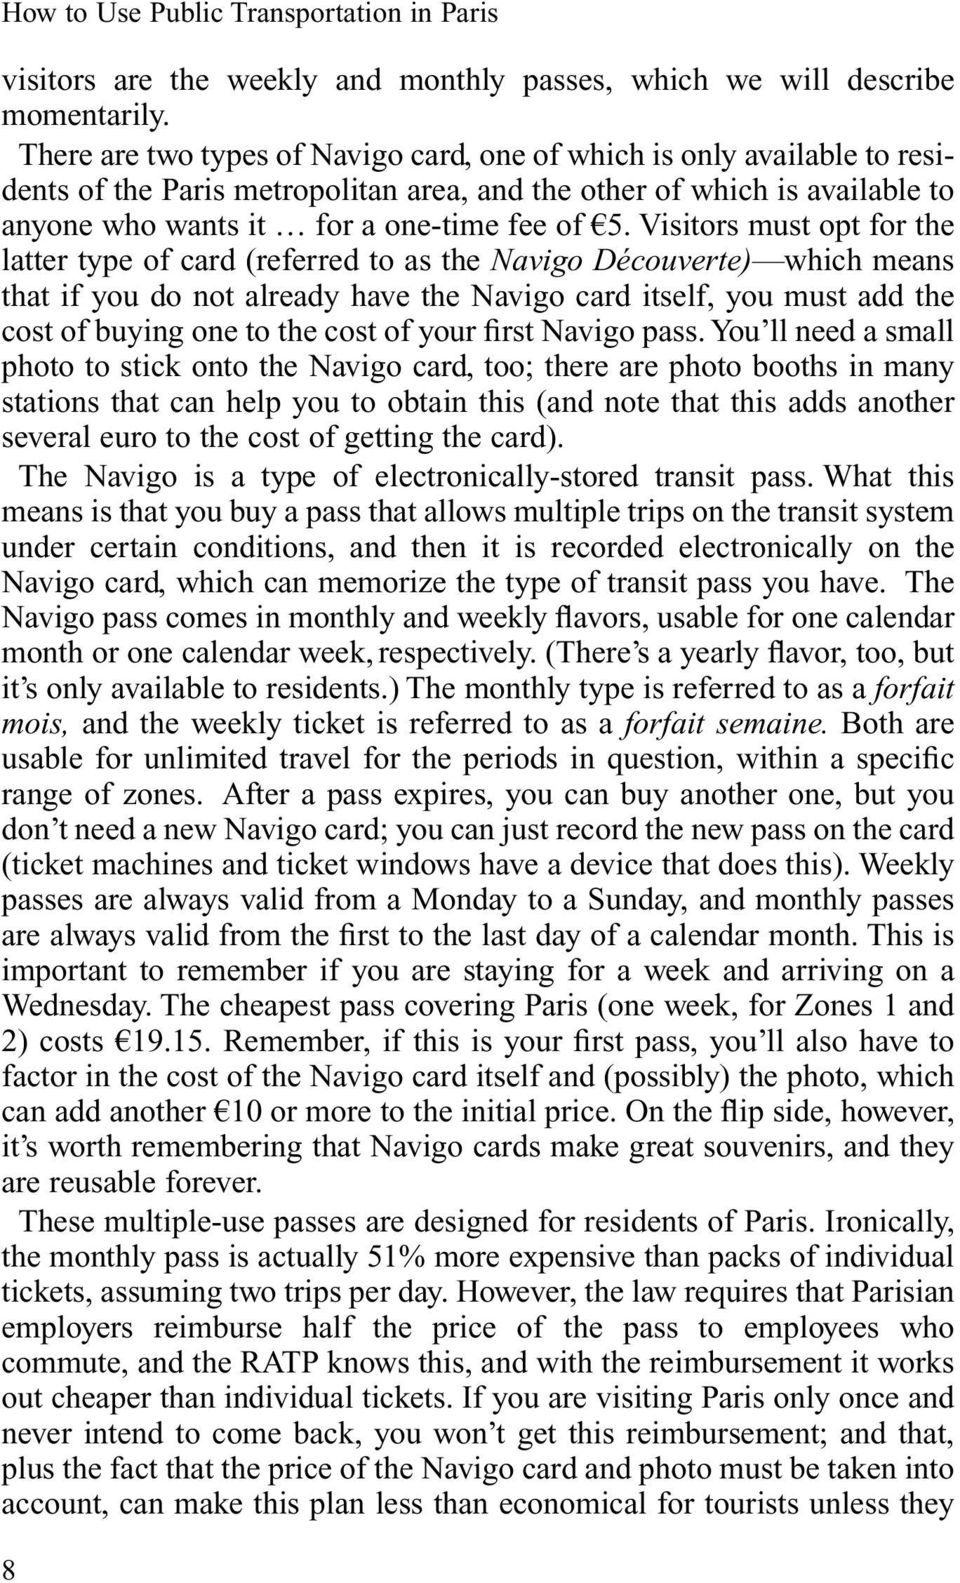 Visitors must opt for the latter type of card (referred to as the Navigo Découverte) which means that if you do not already have the Navigo card itself, you must add the cost of buying one to the